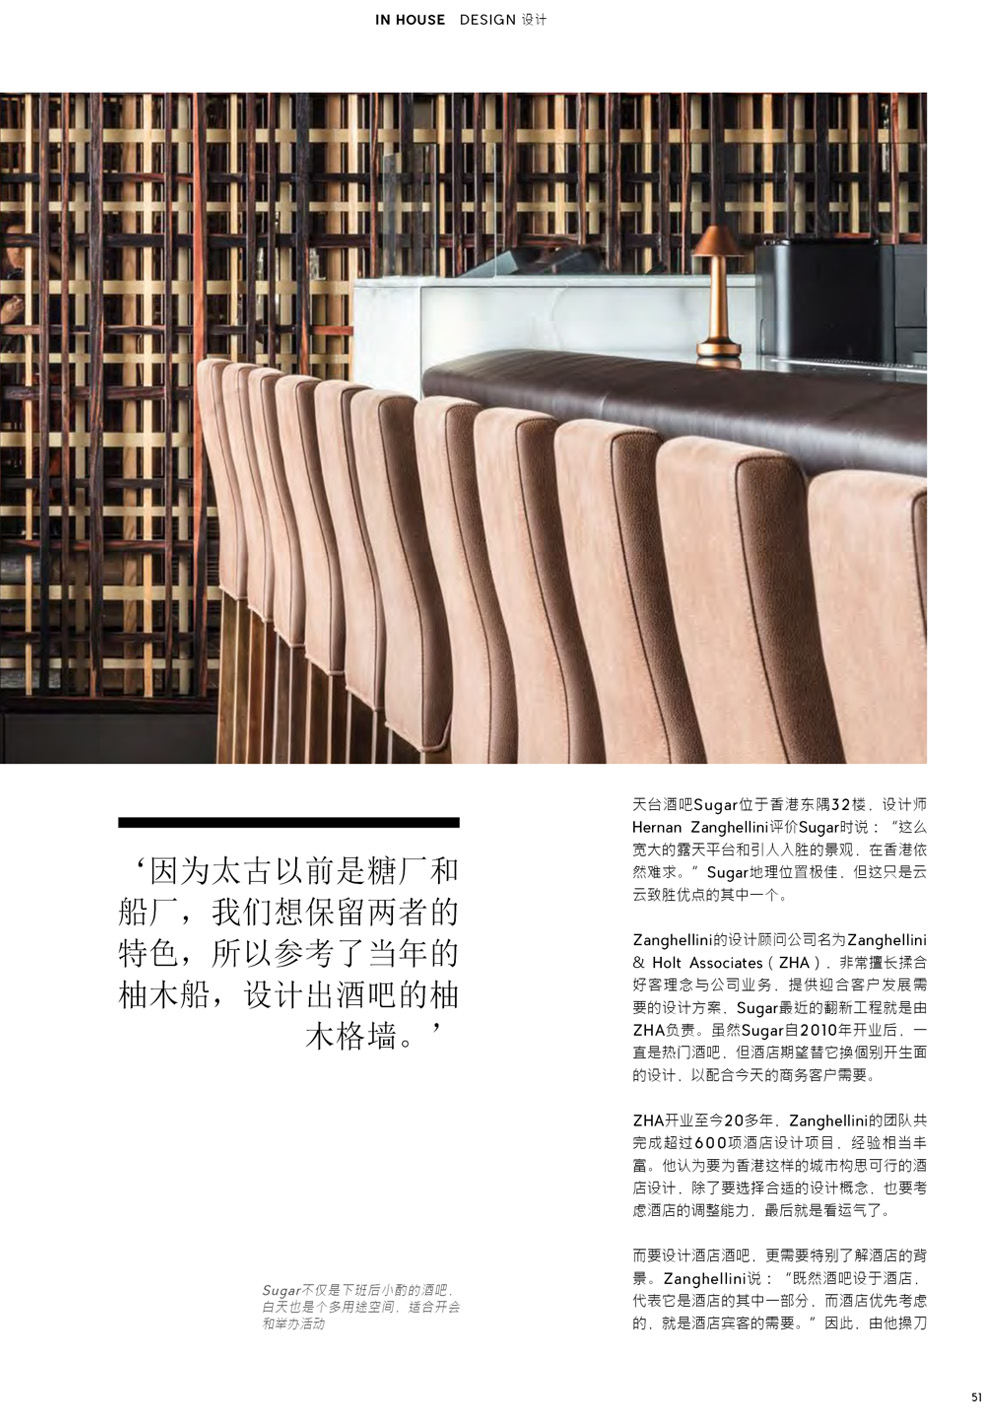 IN-HOUSE MAGAZINE BY SWIRE HOTELS, 2018